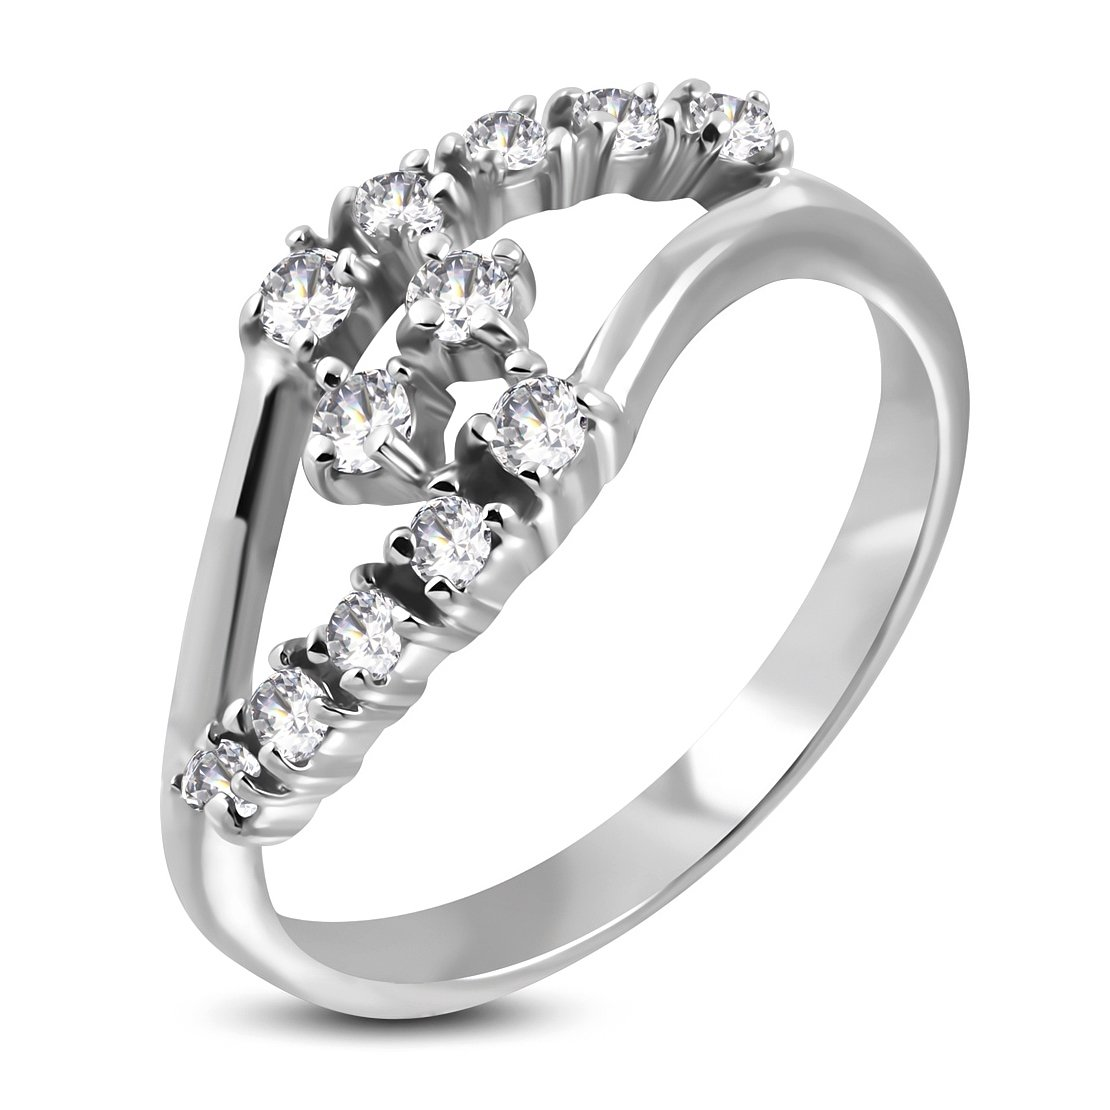 Stainless Steel Attractive Journey Split Shank Bypass Ring with Clear CZ